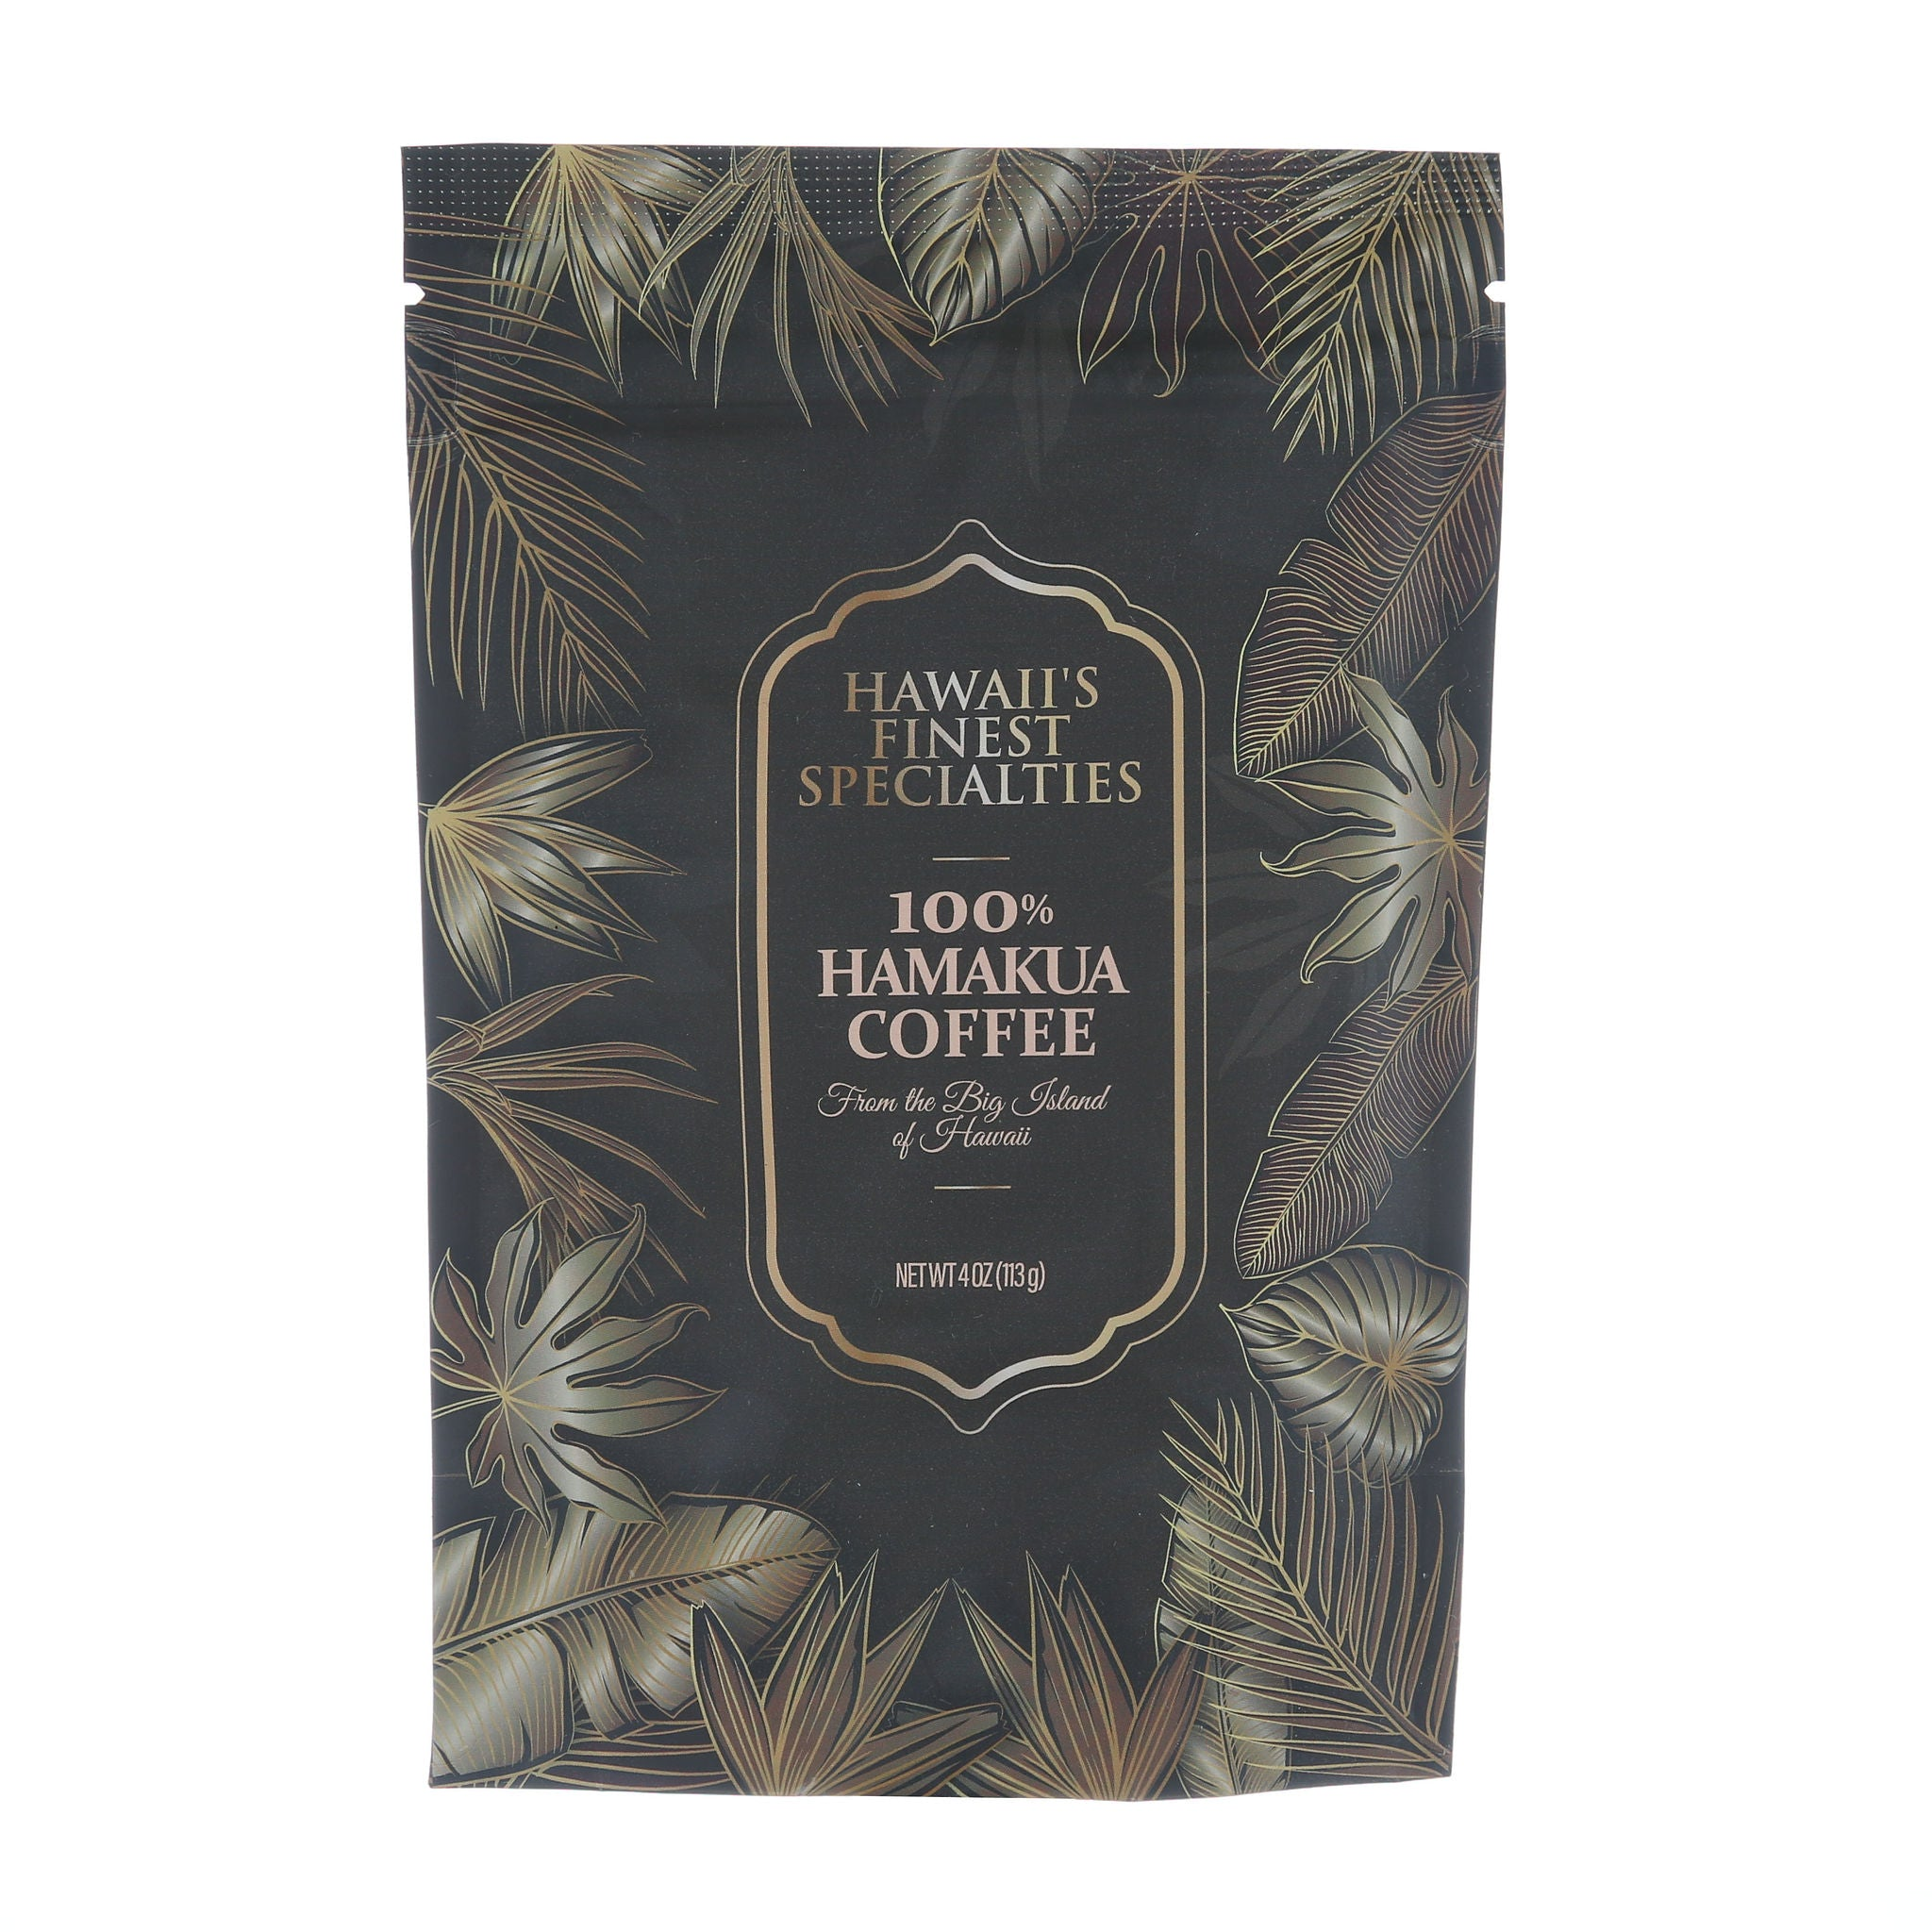 Hawaii's Finest Specialties 100% Hamakua Coffee